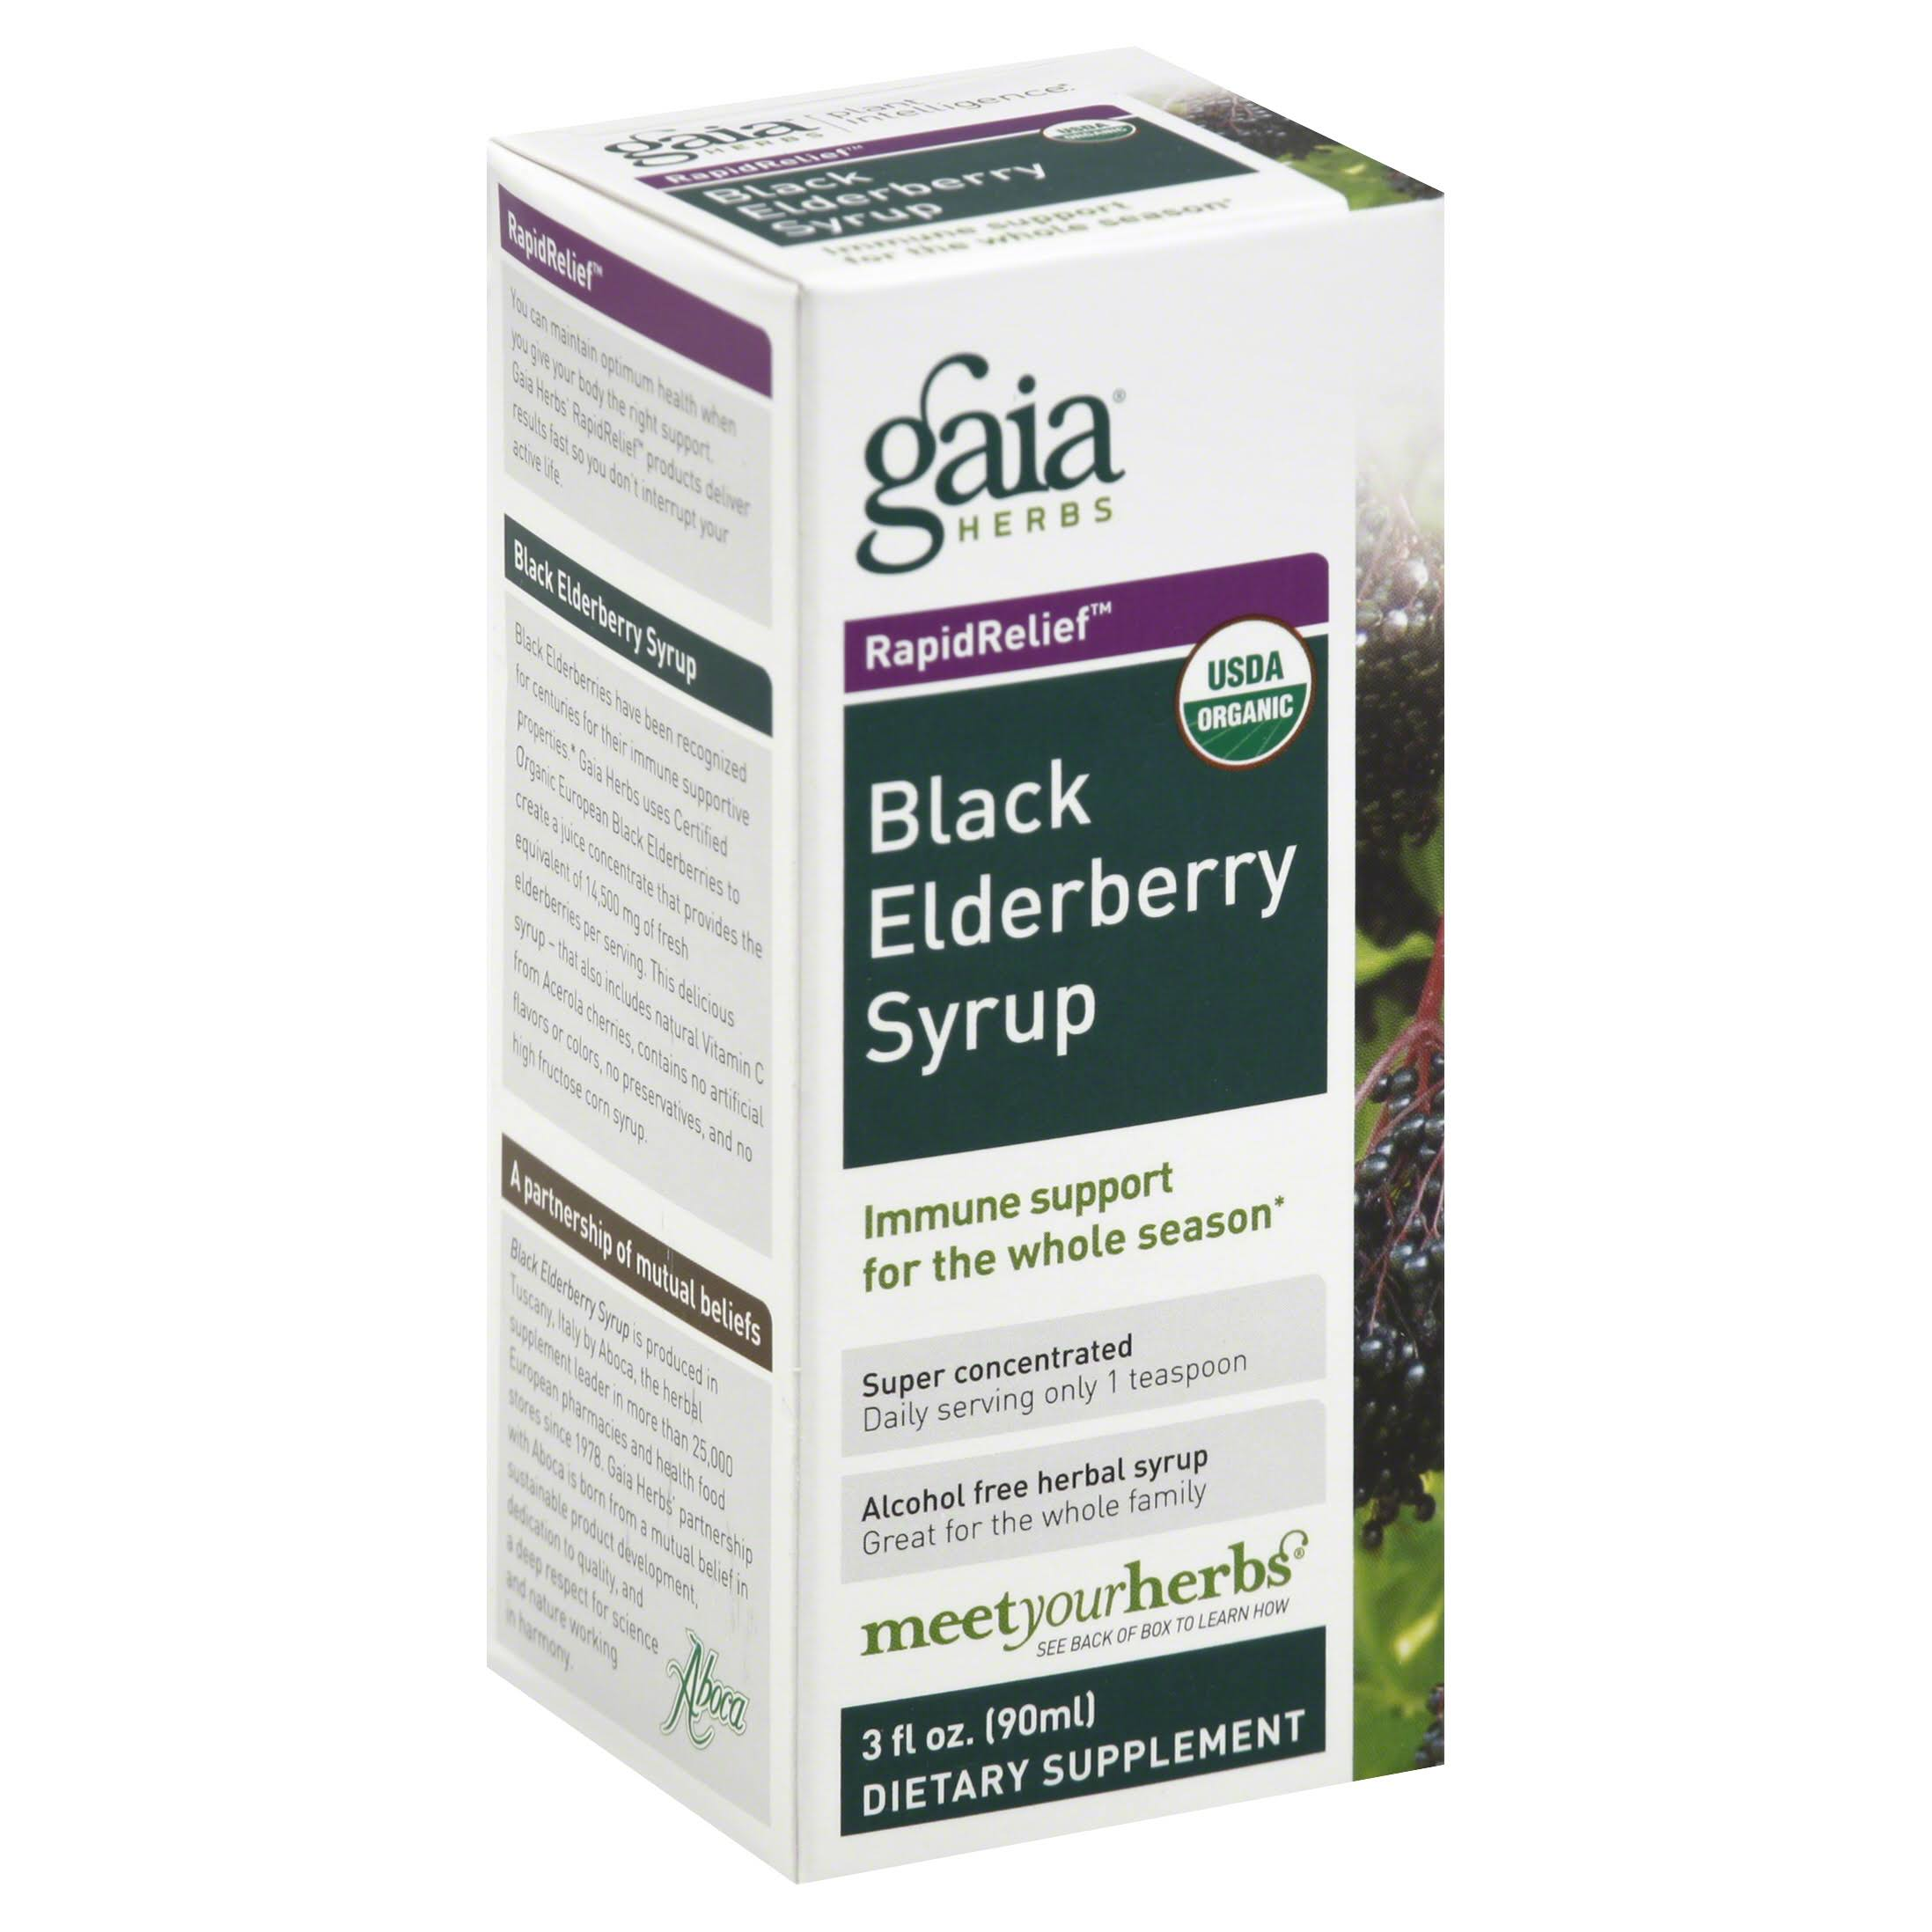 Gaia Herbs Black Elderberry Syrup - 3 fl oz bottle